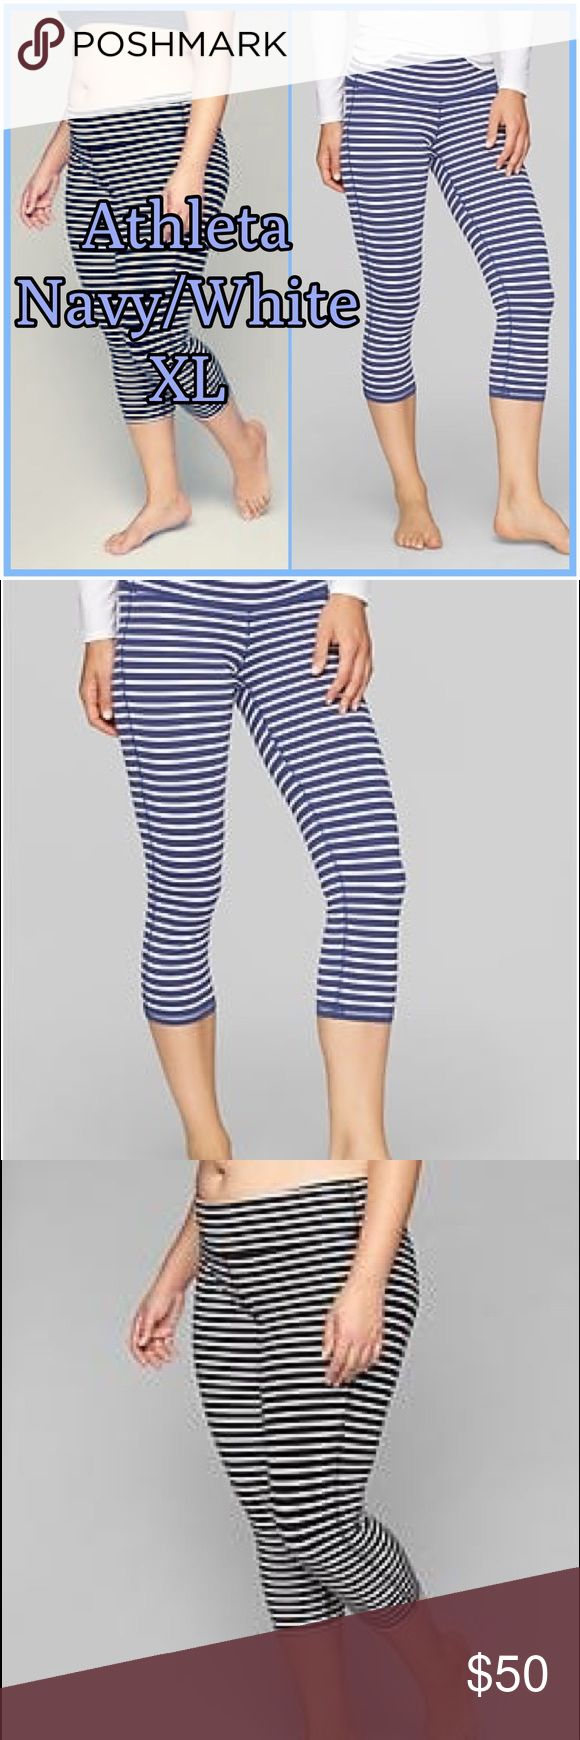 ⭐️⭐️ Athleta Womens Stripes Chaturanga Capri ⭐️⭐️ ⭐️ Athleta Womens Stripes Chaturanga Capri Indigo/White Size XL work out pants. New without tags. 🔥 Our go-to tight for yoga and studio workouts made from our signature soft, stretchy, wicking Pilayo . ⭐️⭐️ Top seller, Posh ambassador, super fast shipping. Athleta Pants Track Pants & Joggers